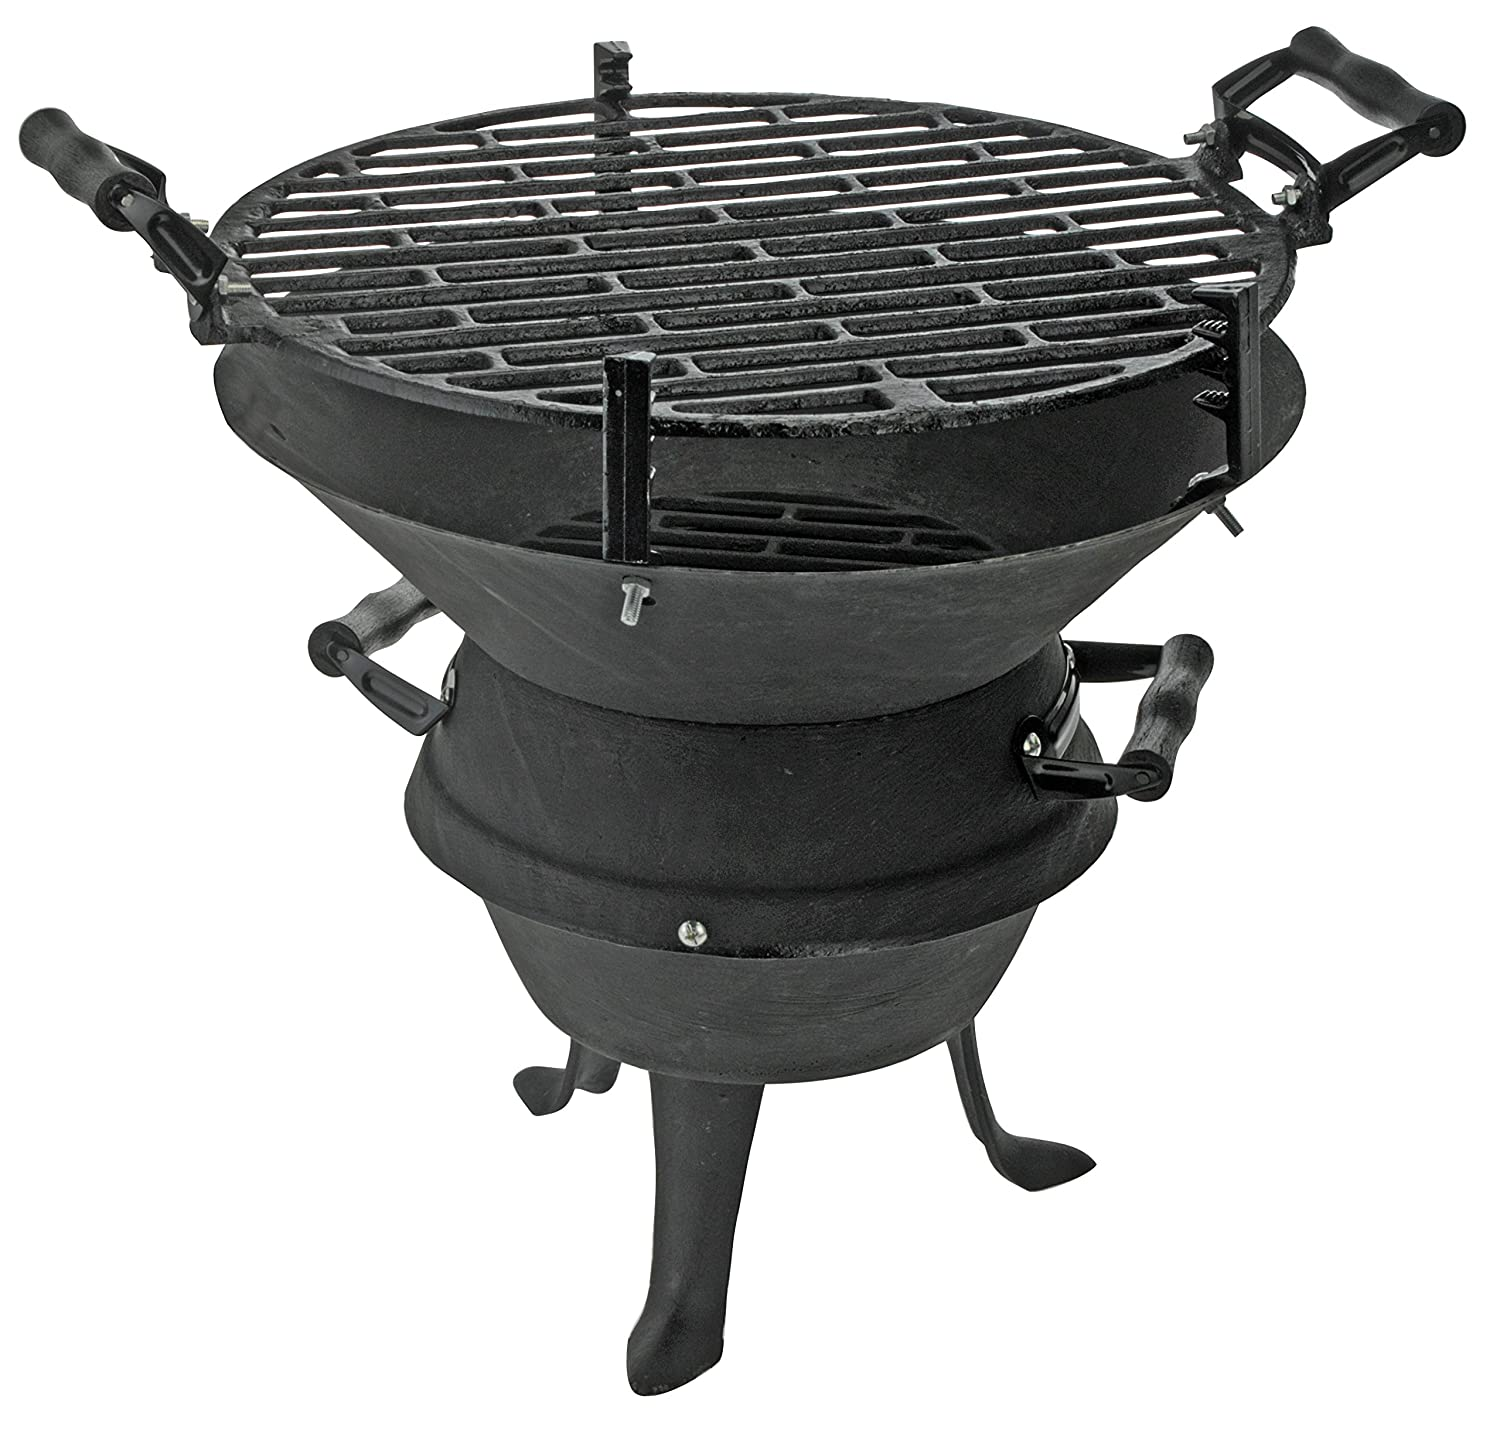 Copy BBQ Collection Ronde Houtskool Barbecue